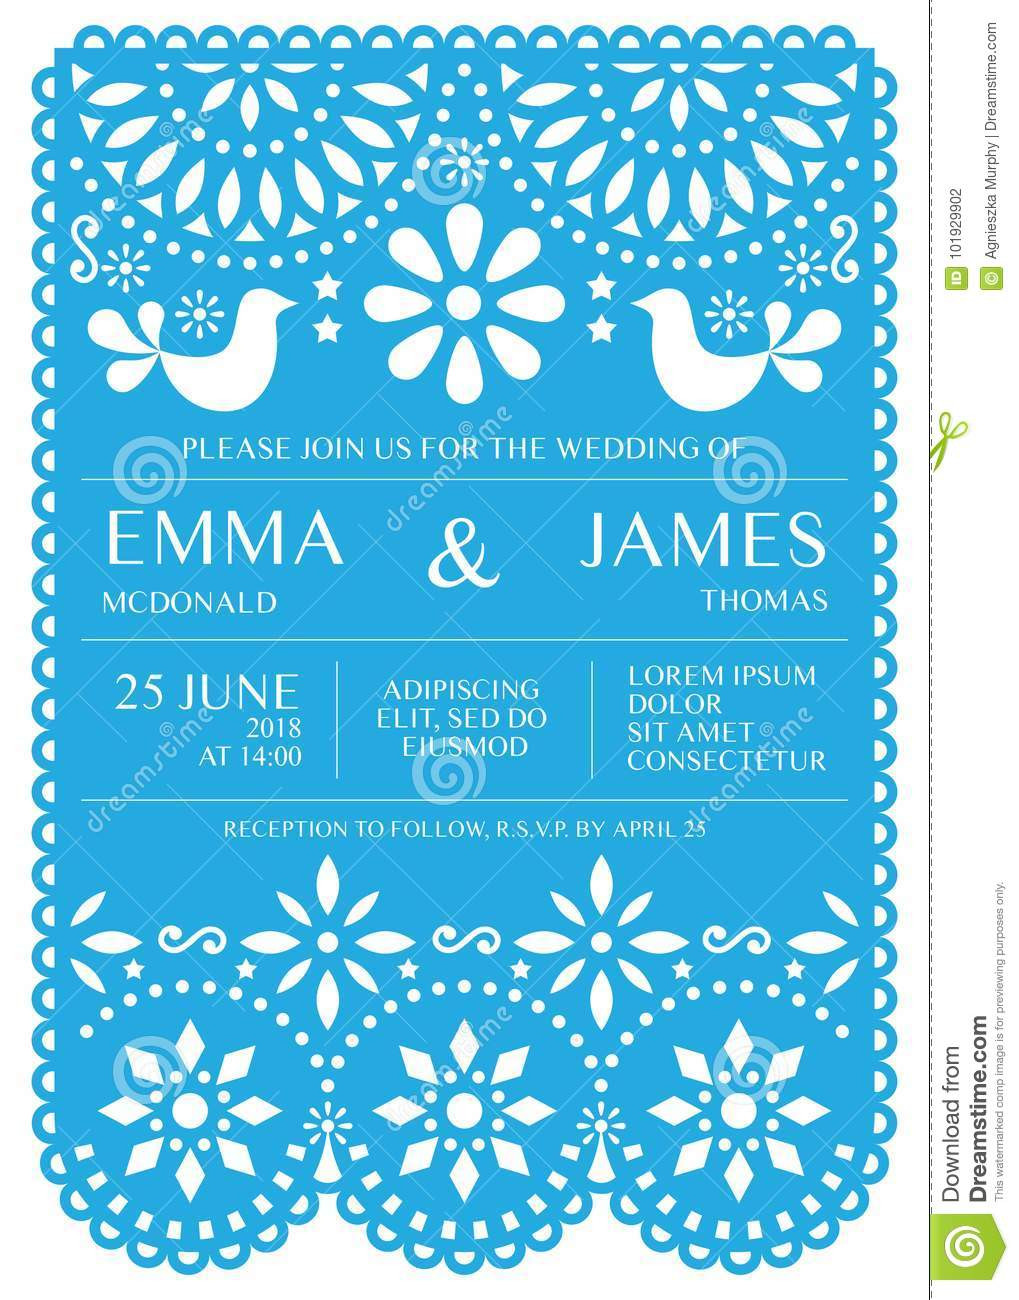 Papel Picado Invitation Template